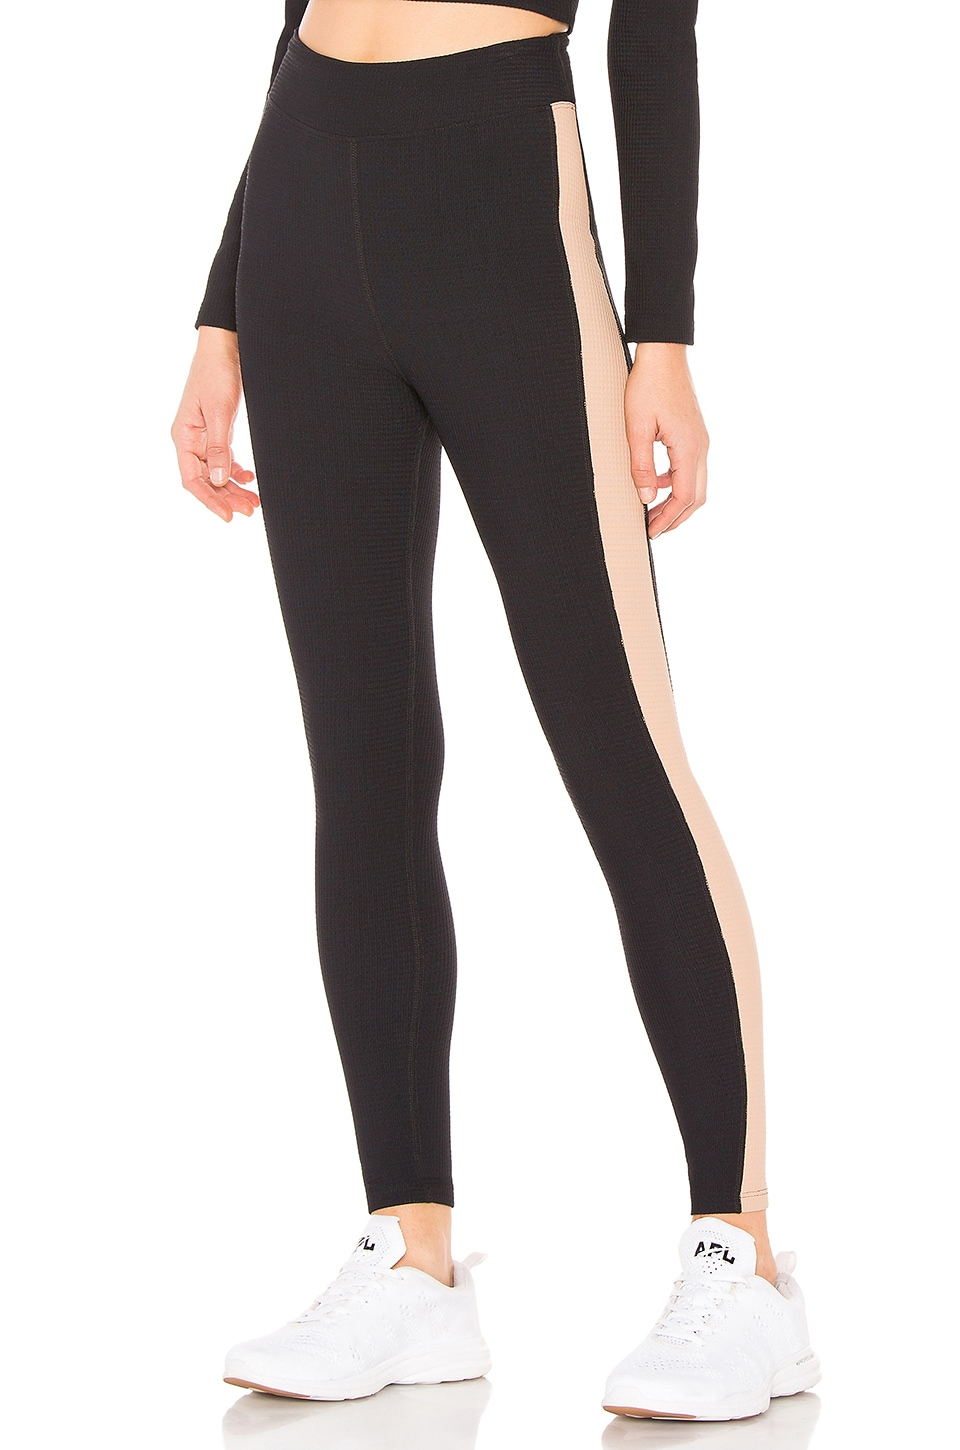 YEAR OF OURS Thermal Track Legging in Black & Tan